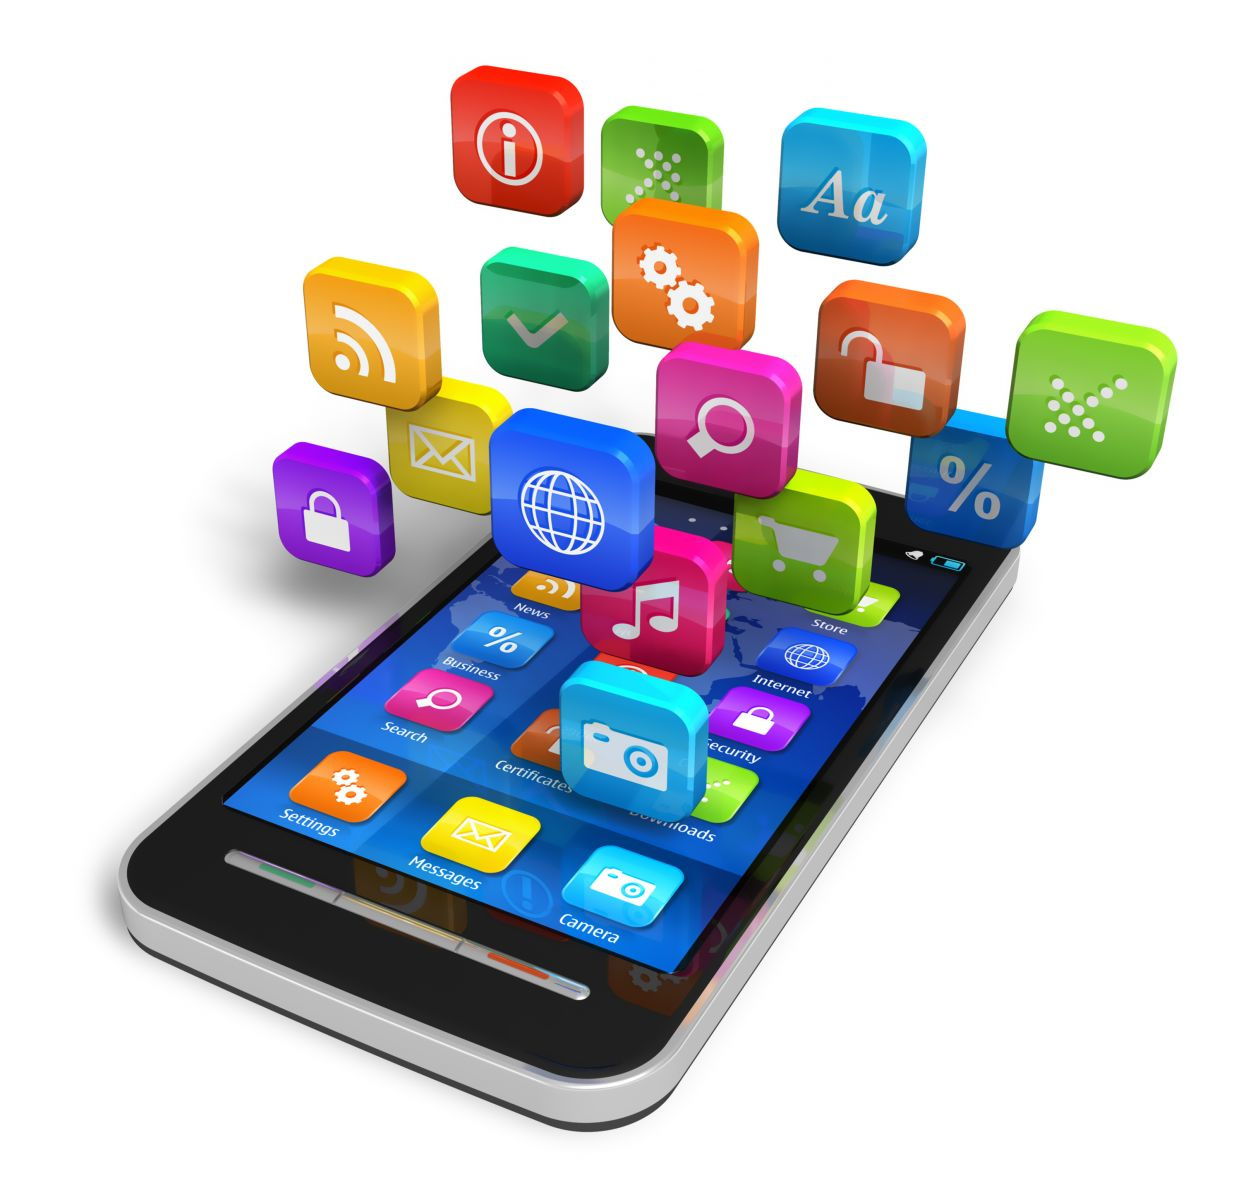 Smartphone Applications For Managing Your Home - Image 1